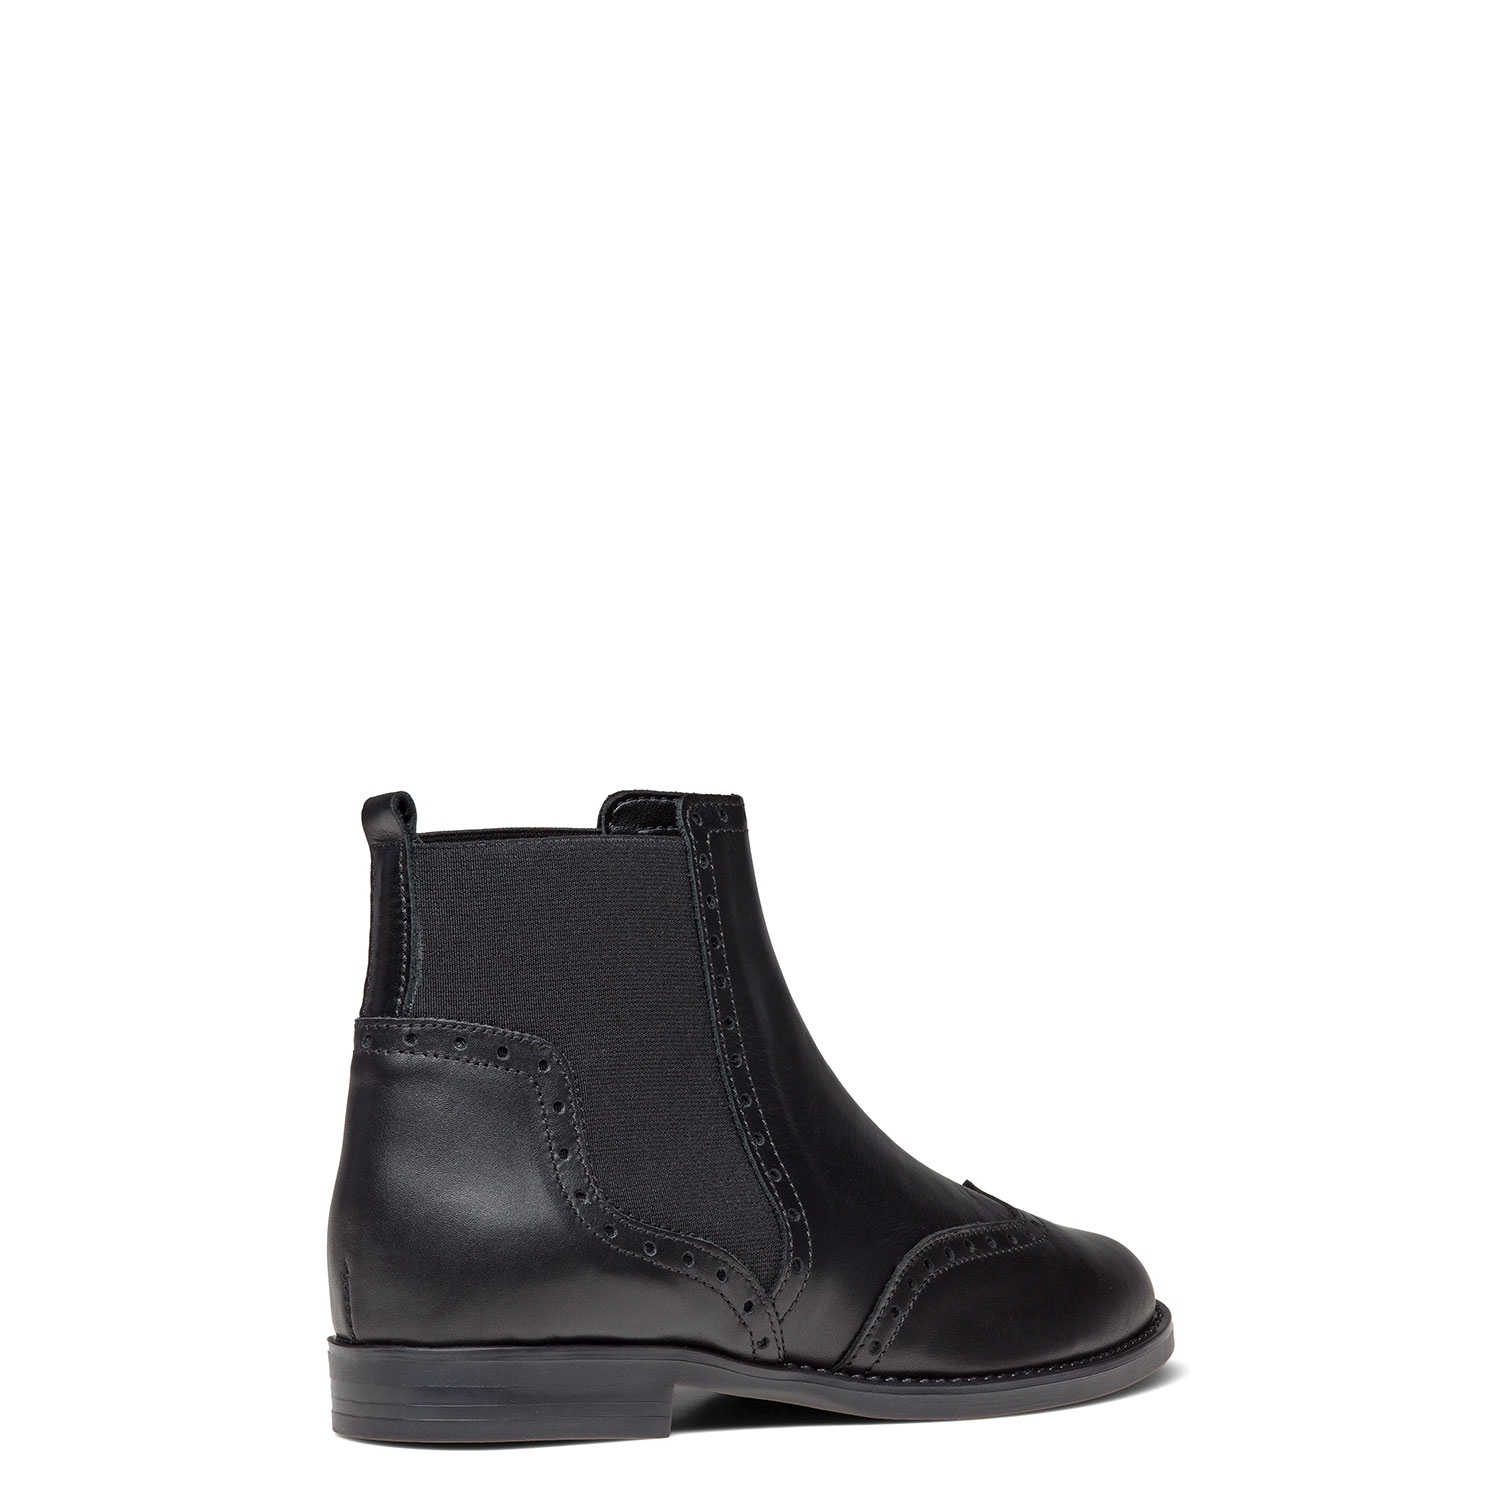 Women's ankle boots CARLO PAZOLINI SI-ANA5-1